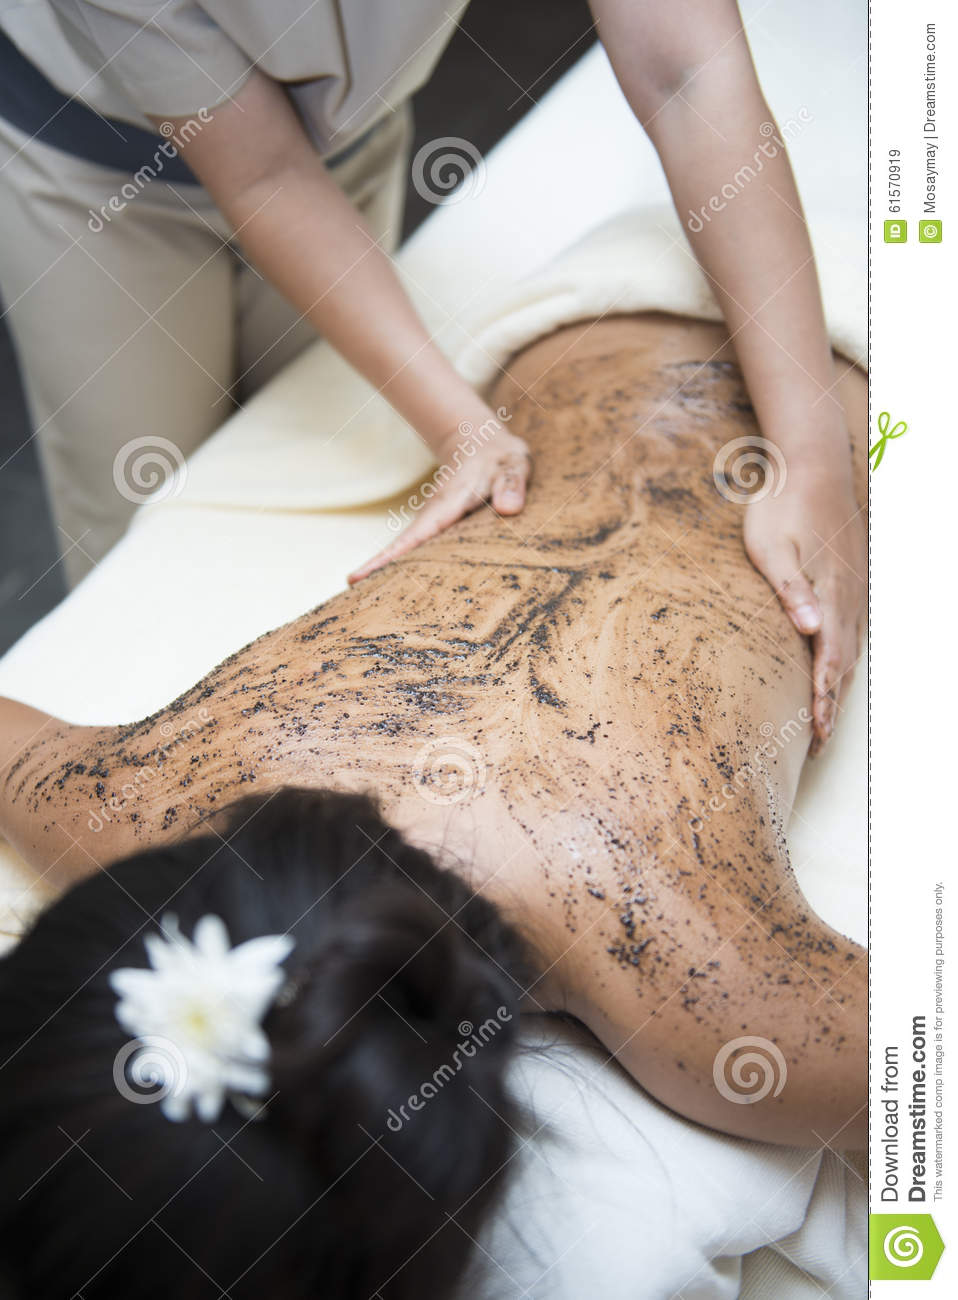 Massage With Coffee Scrub By Therapists, Stock Image ...